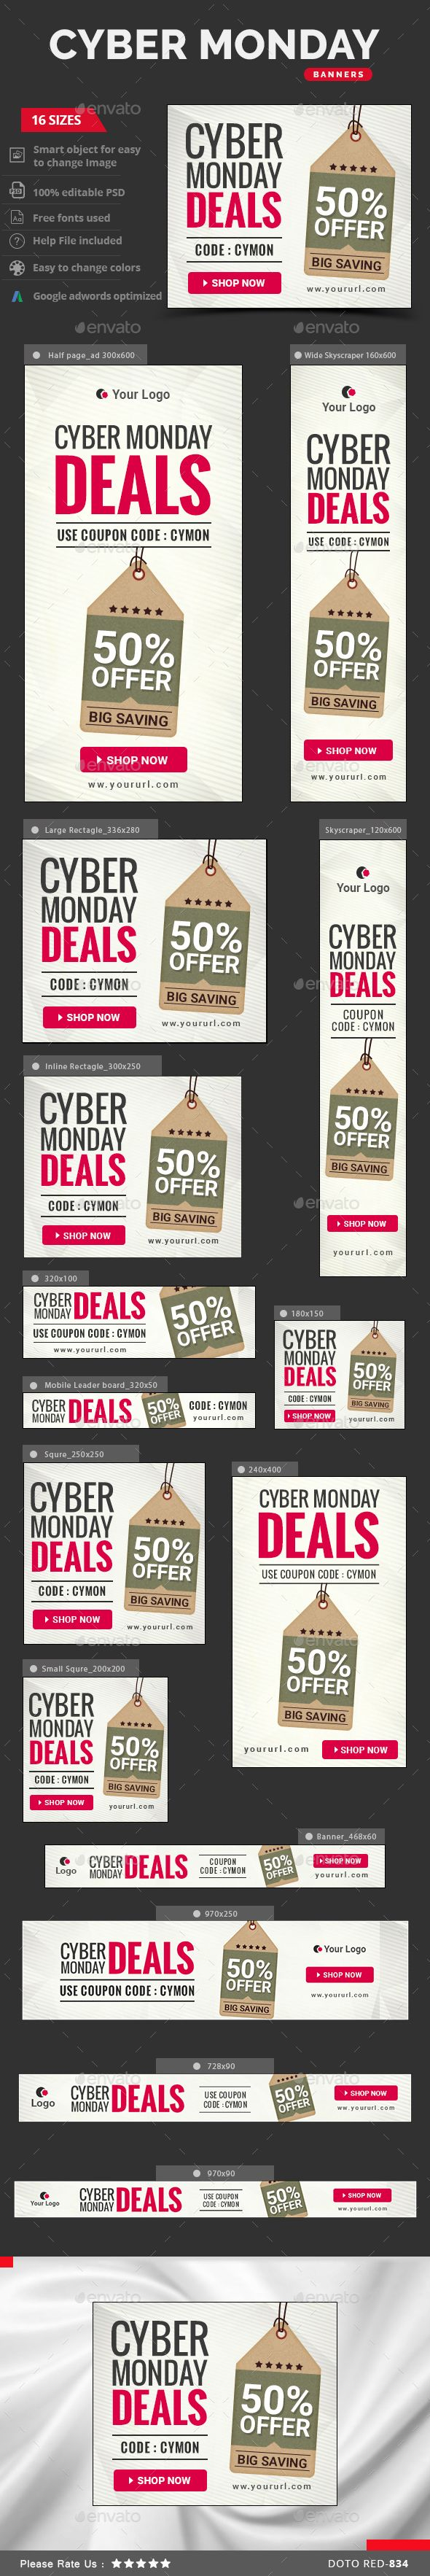 Cyber Monday Web Banners Template PSD #ads #design Download: http://graphicriver.net/item/cyber-monday-banners/13606504?ref=ksioks